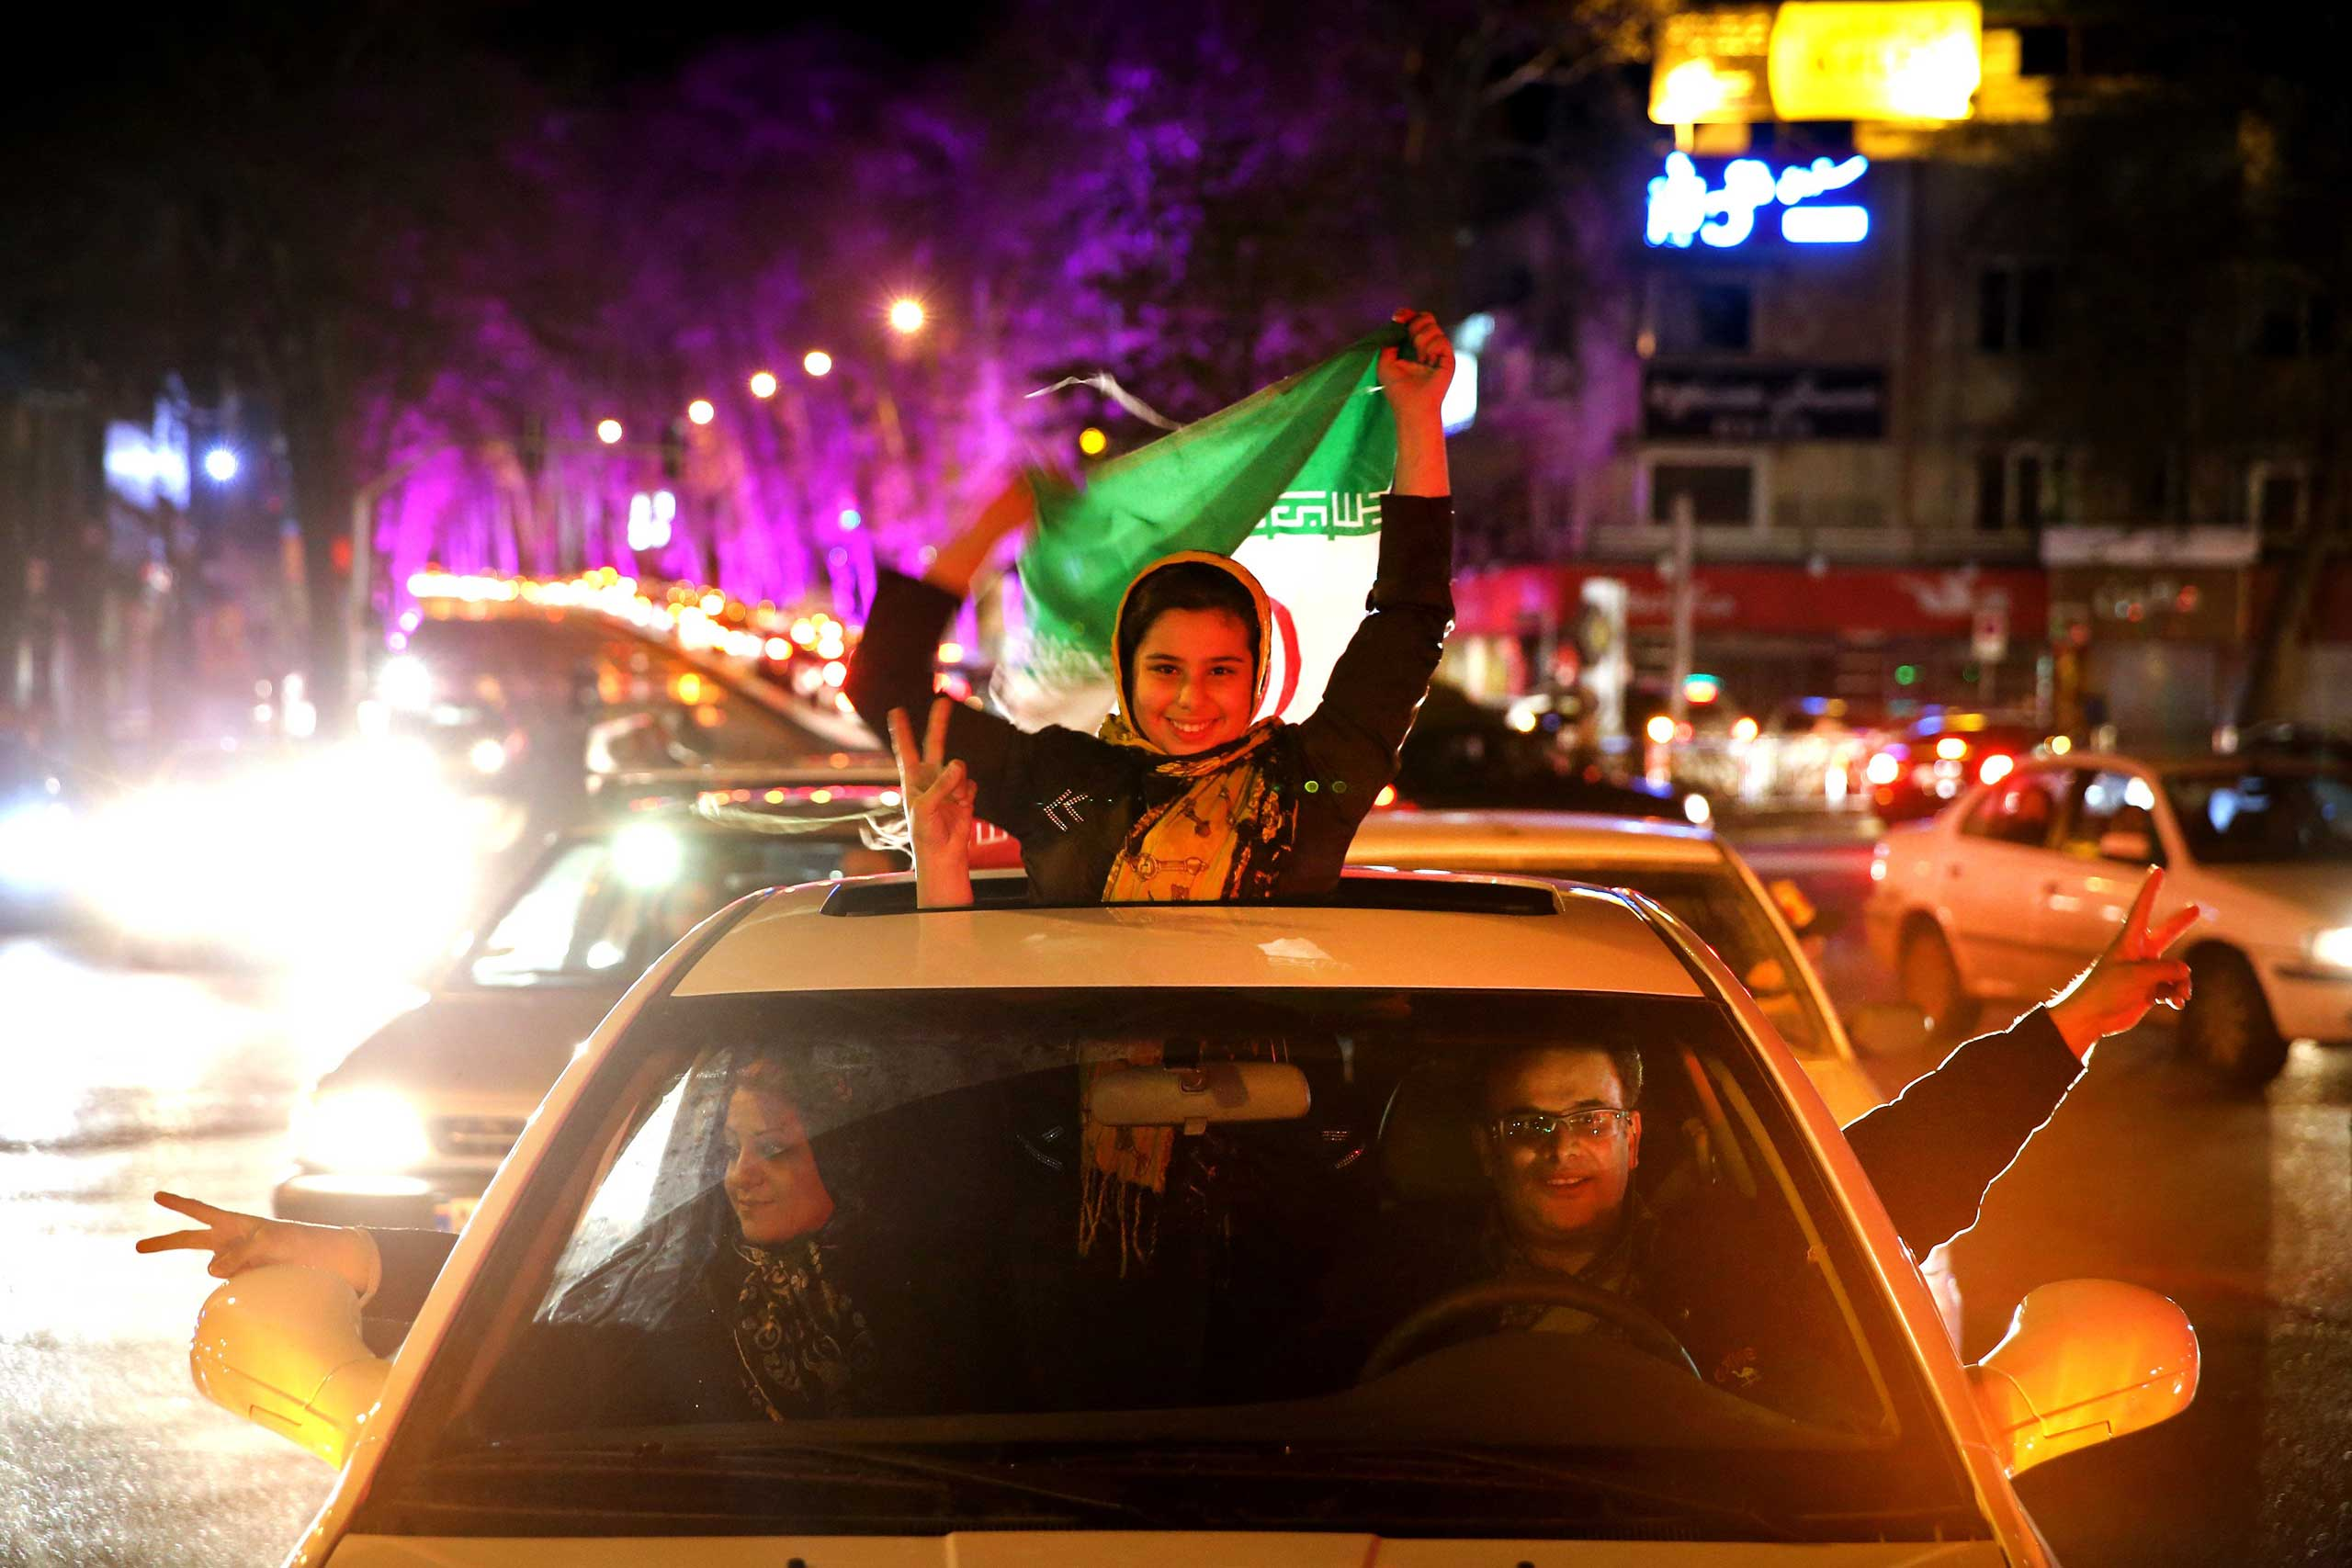 Iranians celebrate Iran's nuclear agreement with world powers on a street in northern Tehran, Iran, on Apr. 2, 2015.